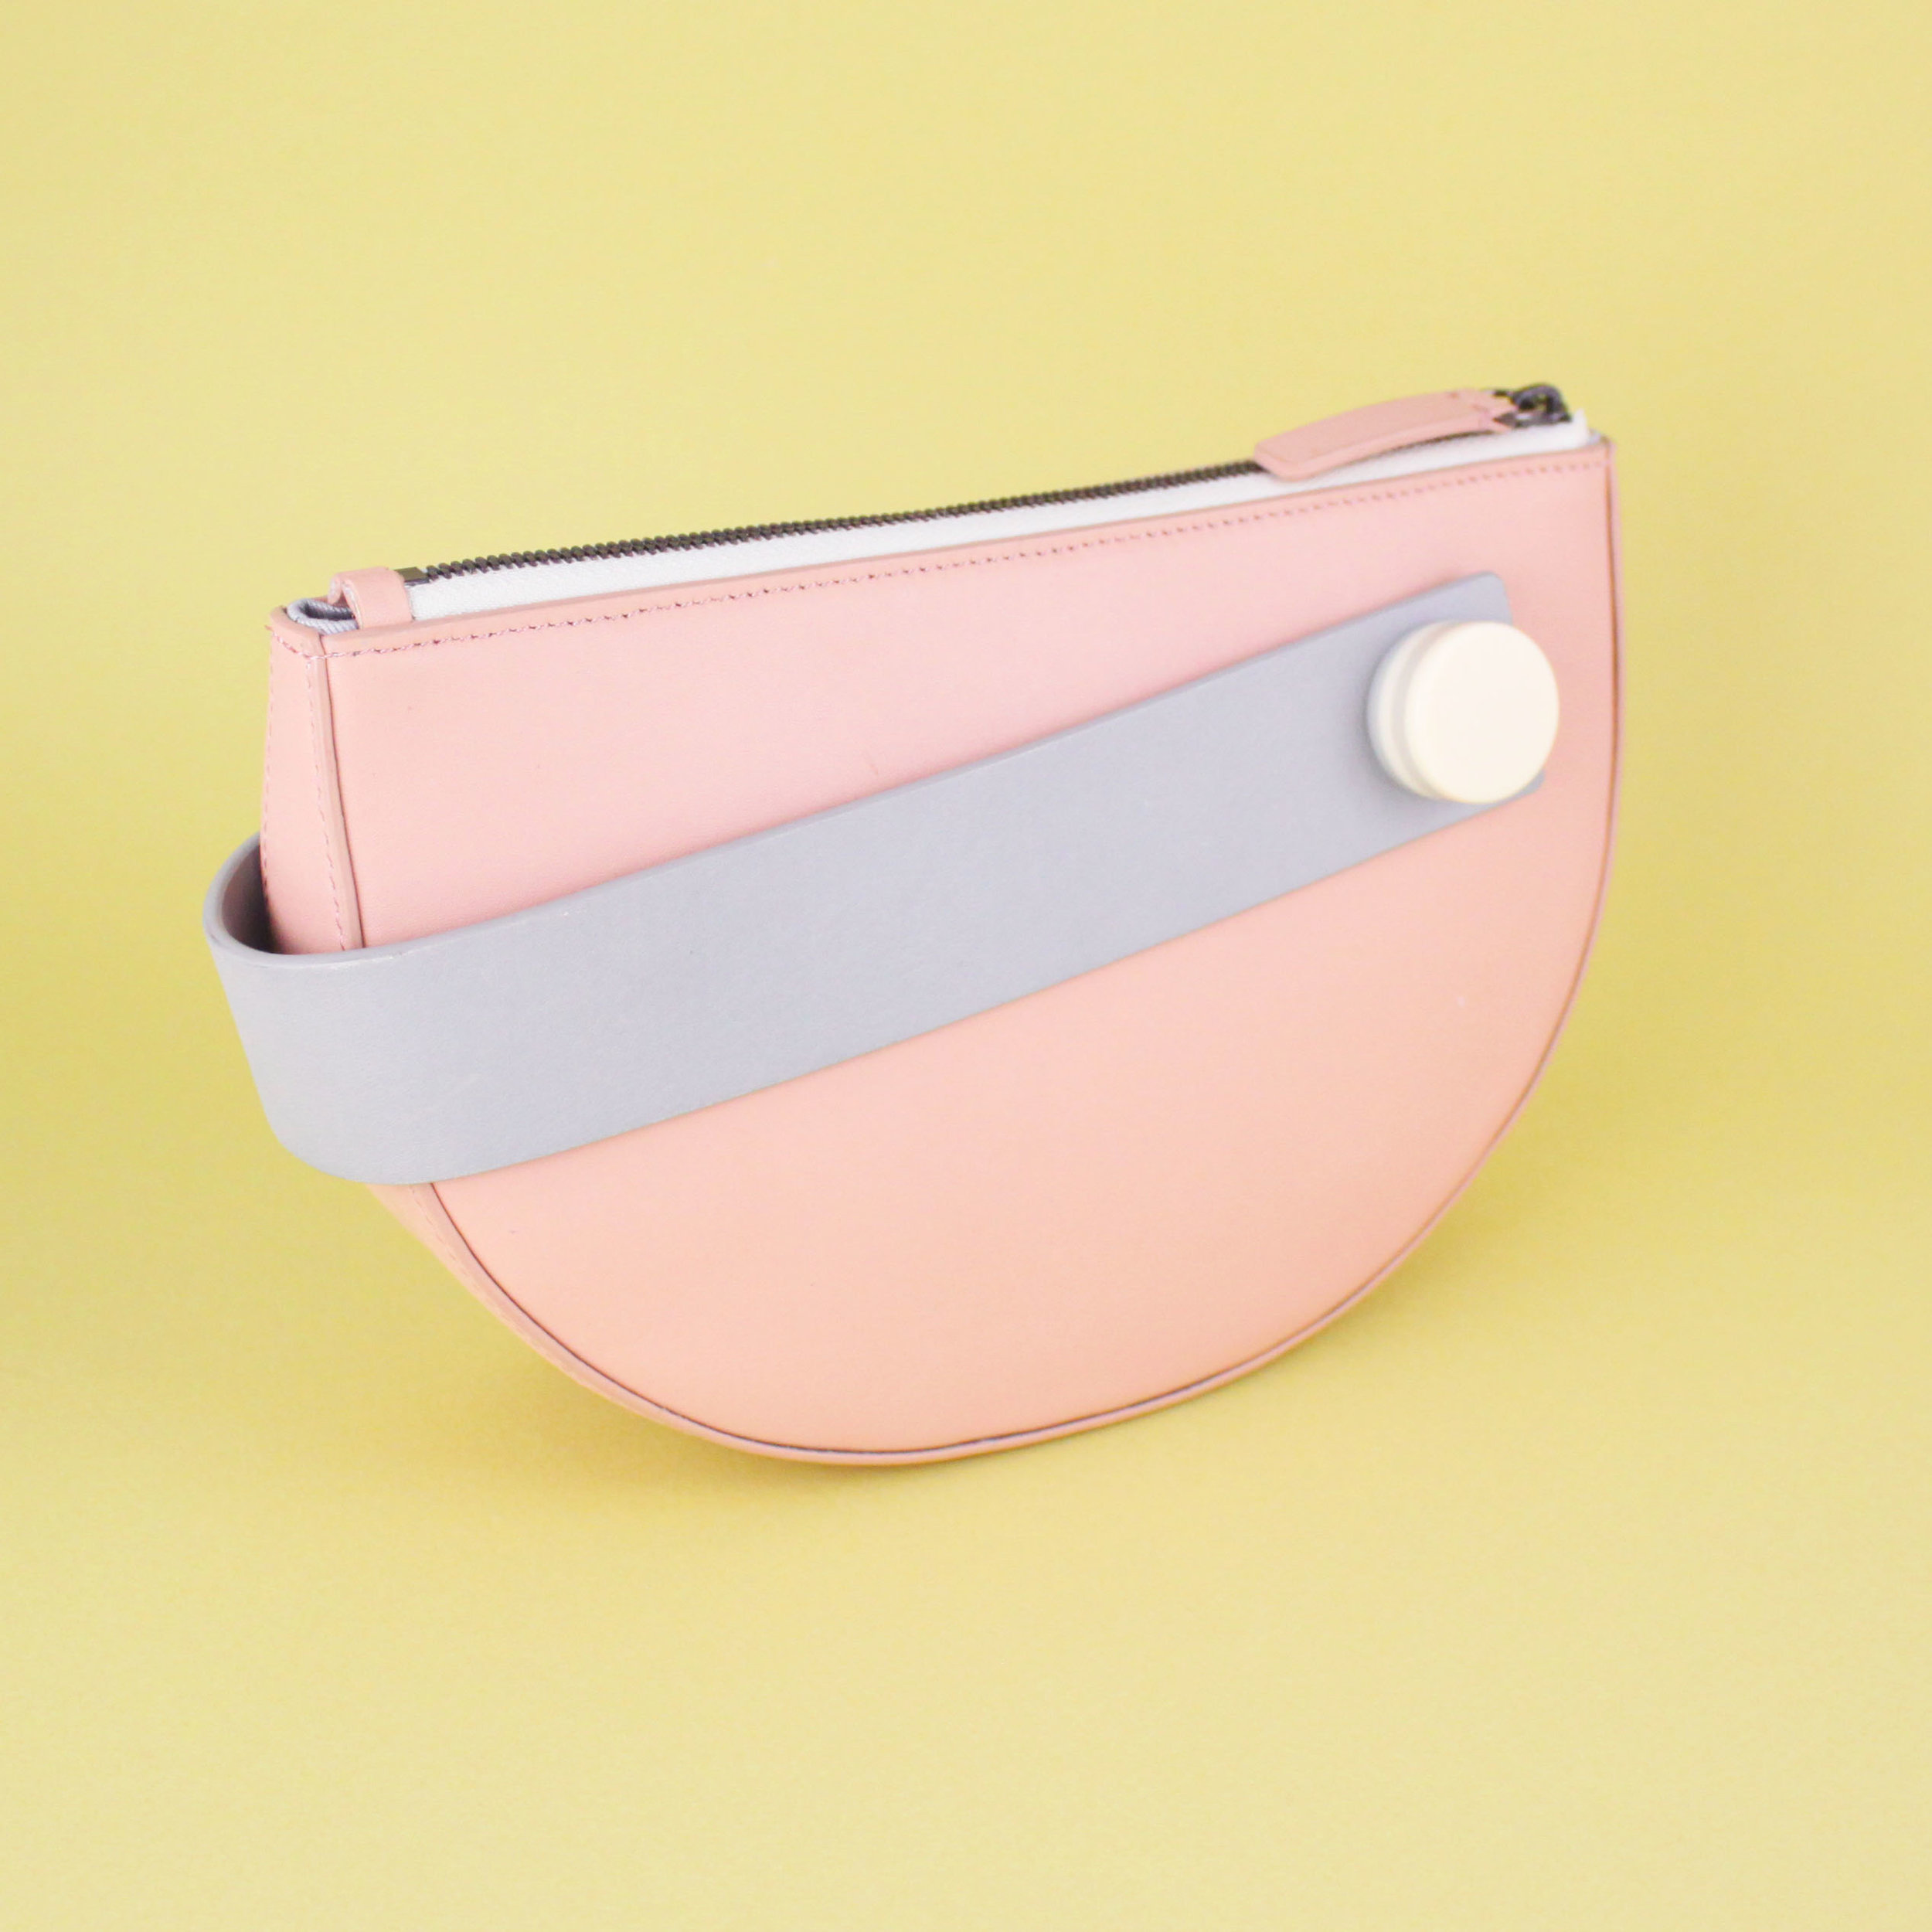 HALF-MOON-MINI-BAG-PINK-BLUSH-GREY-MATTER-MATTERS-COOL-MACHINE-CONCEPT-STORE-4.jpg